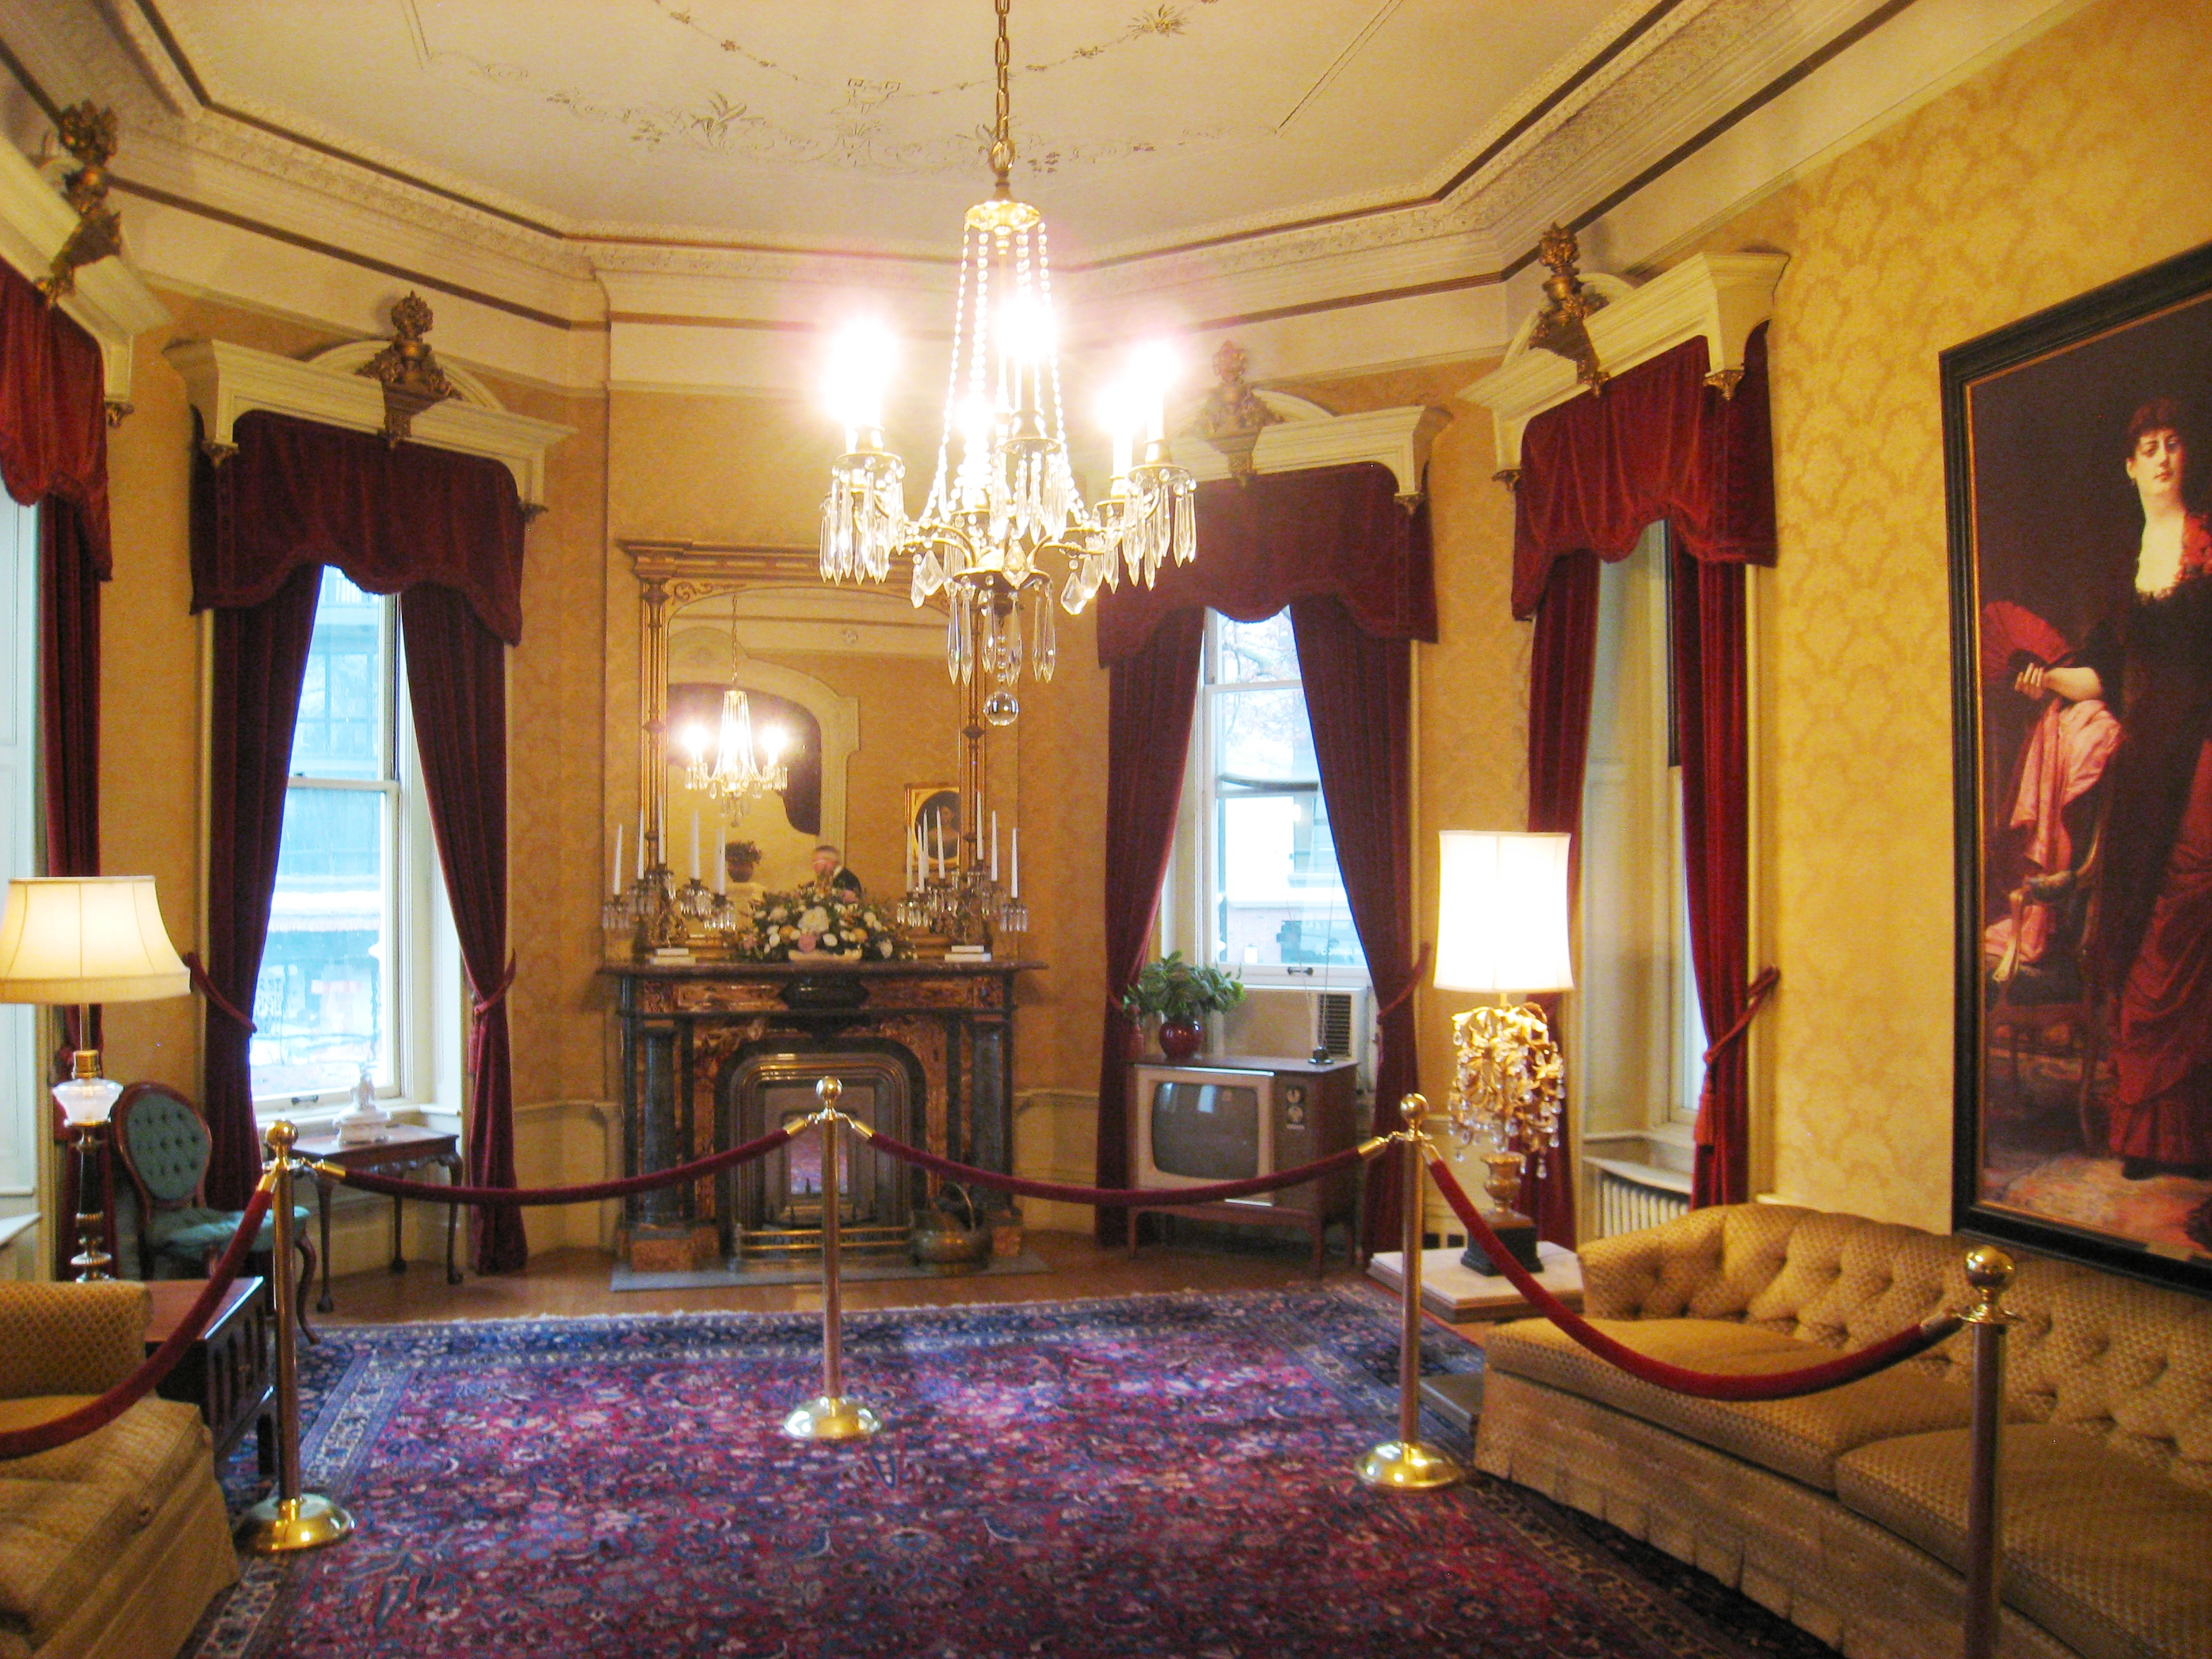 Pictures Of Beautifully Decorated Homes File Governor S Mansion State Historic Park Second